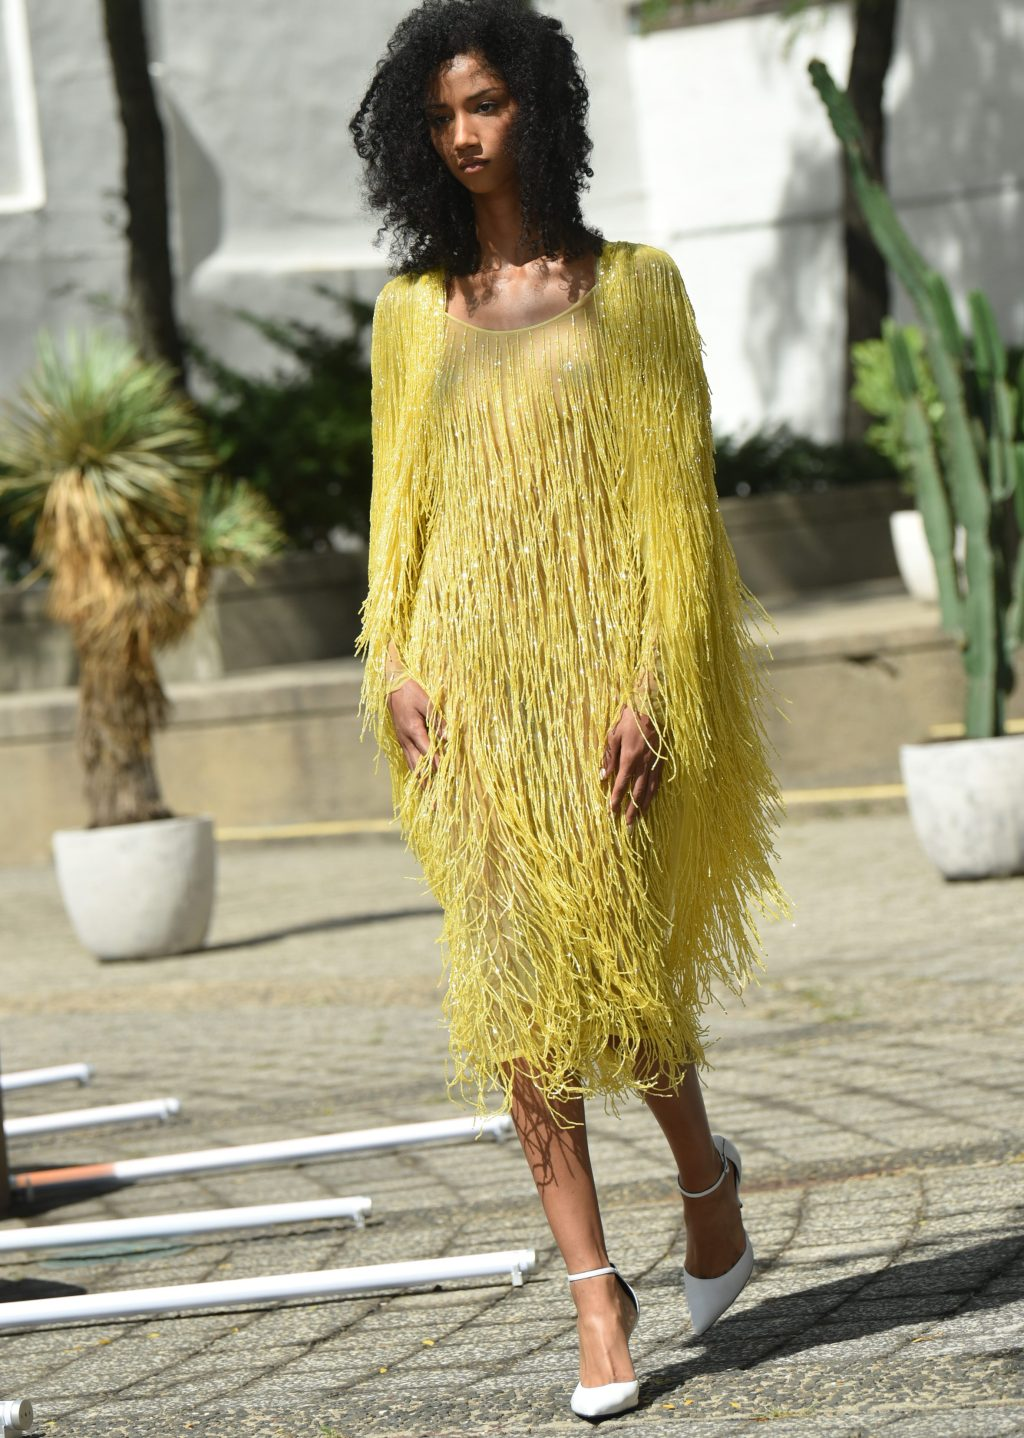 The best looks for spring on the New York Fashion Week runway